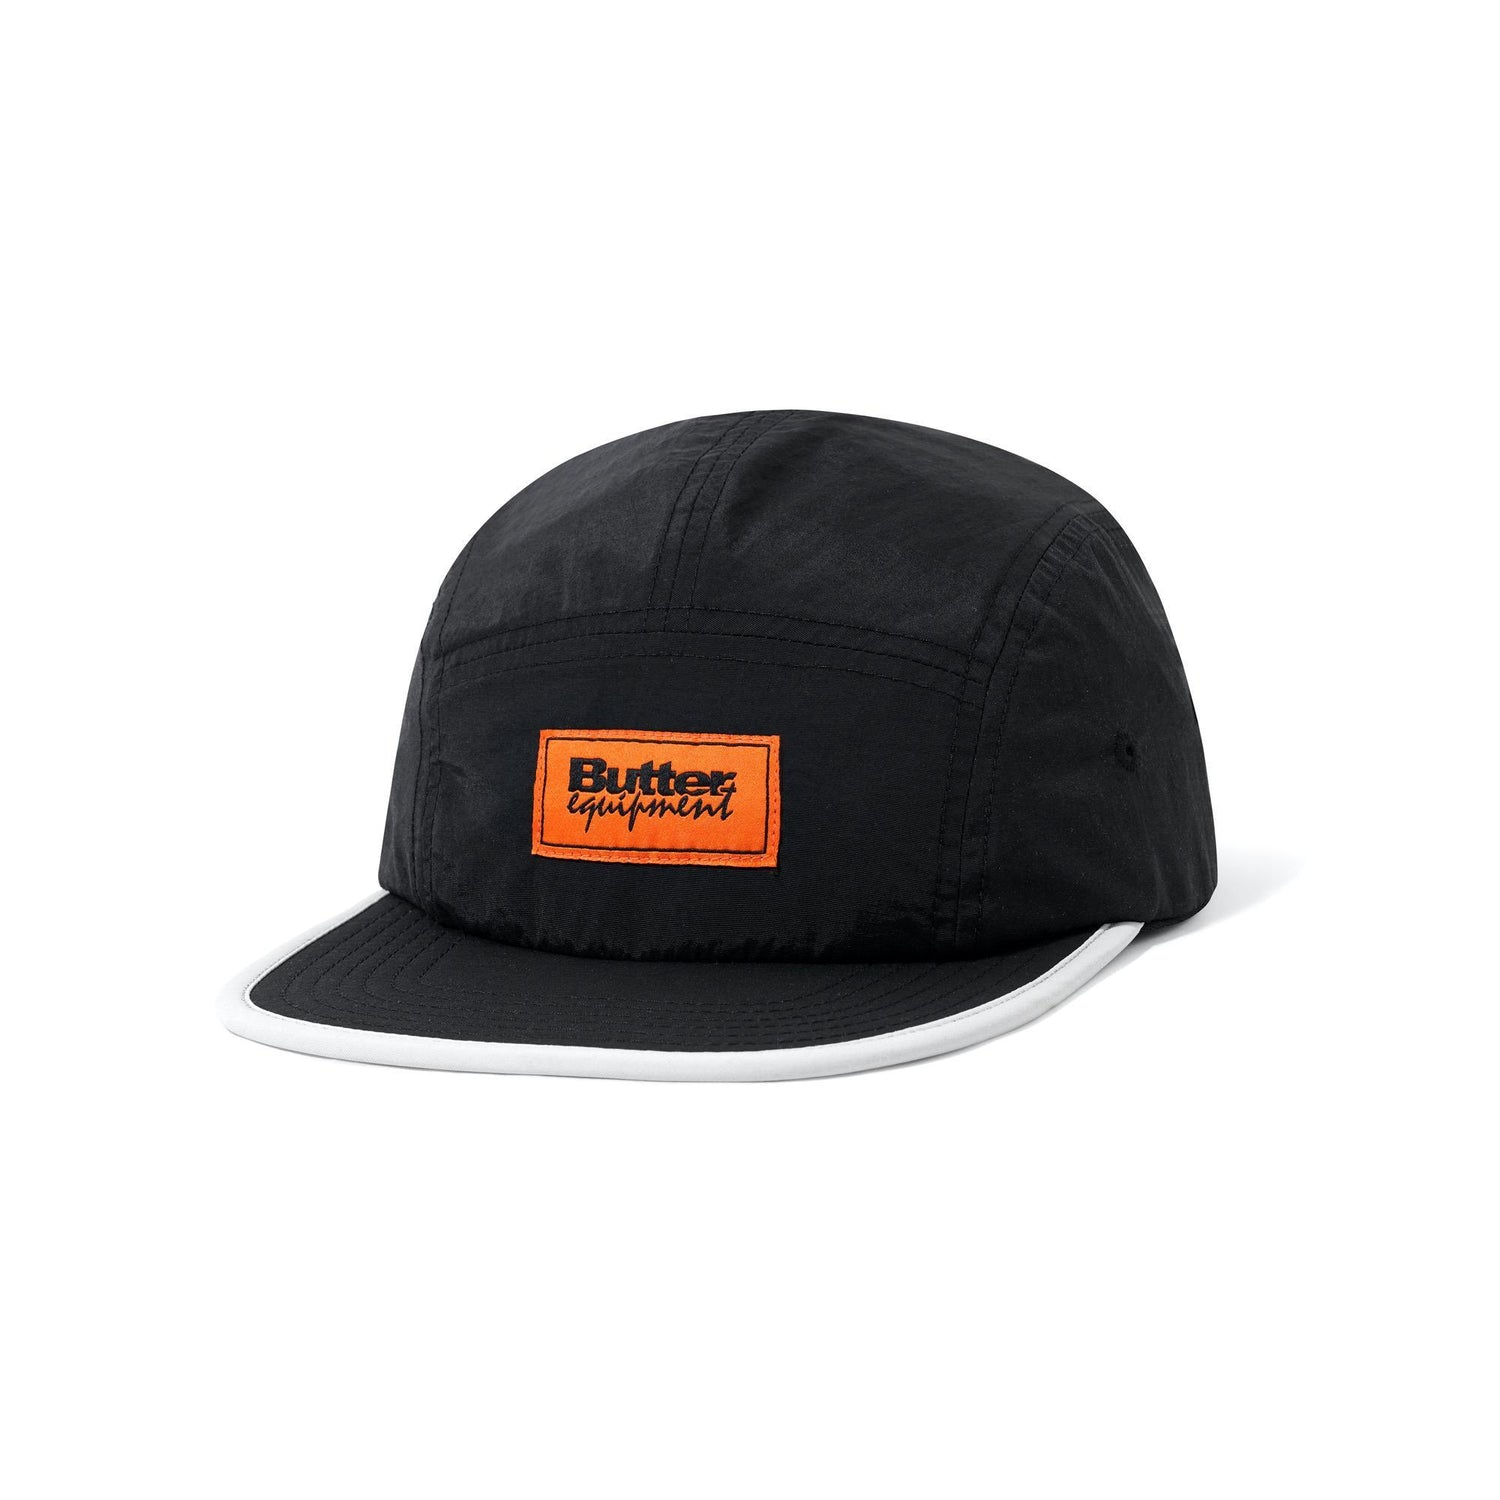 Equipment 5 Panel, Black